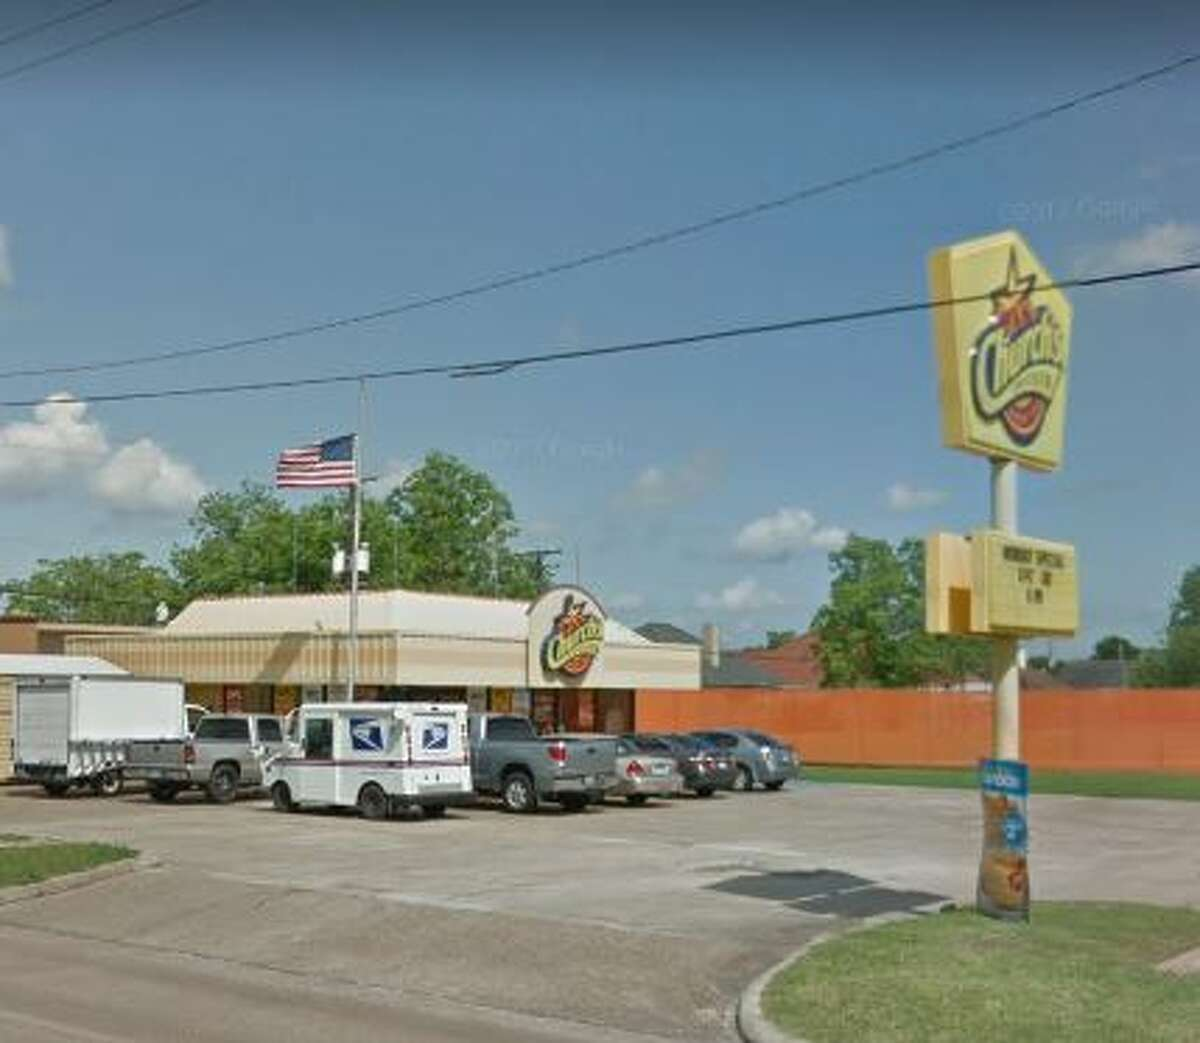 Church's Chicken 903 Nederland Avenue Score: 91 Violations: Flies in container with thawing food, flies in restaurants, employees not wearing hair nets, dirty floor, dirty ice machine.